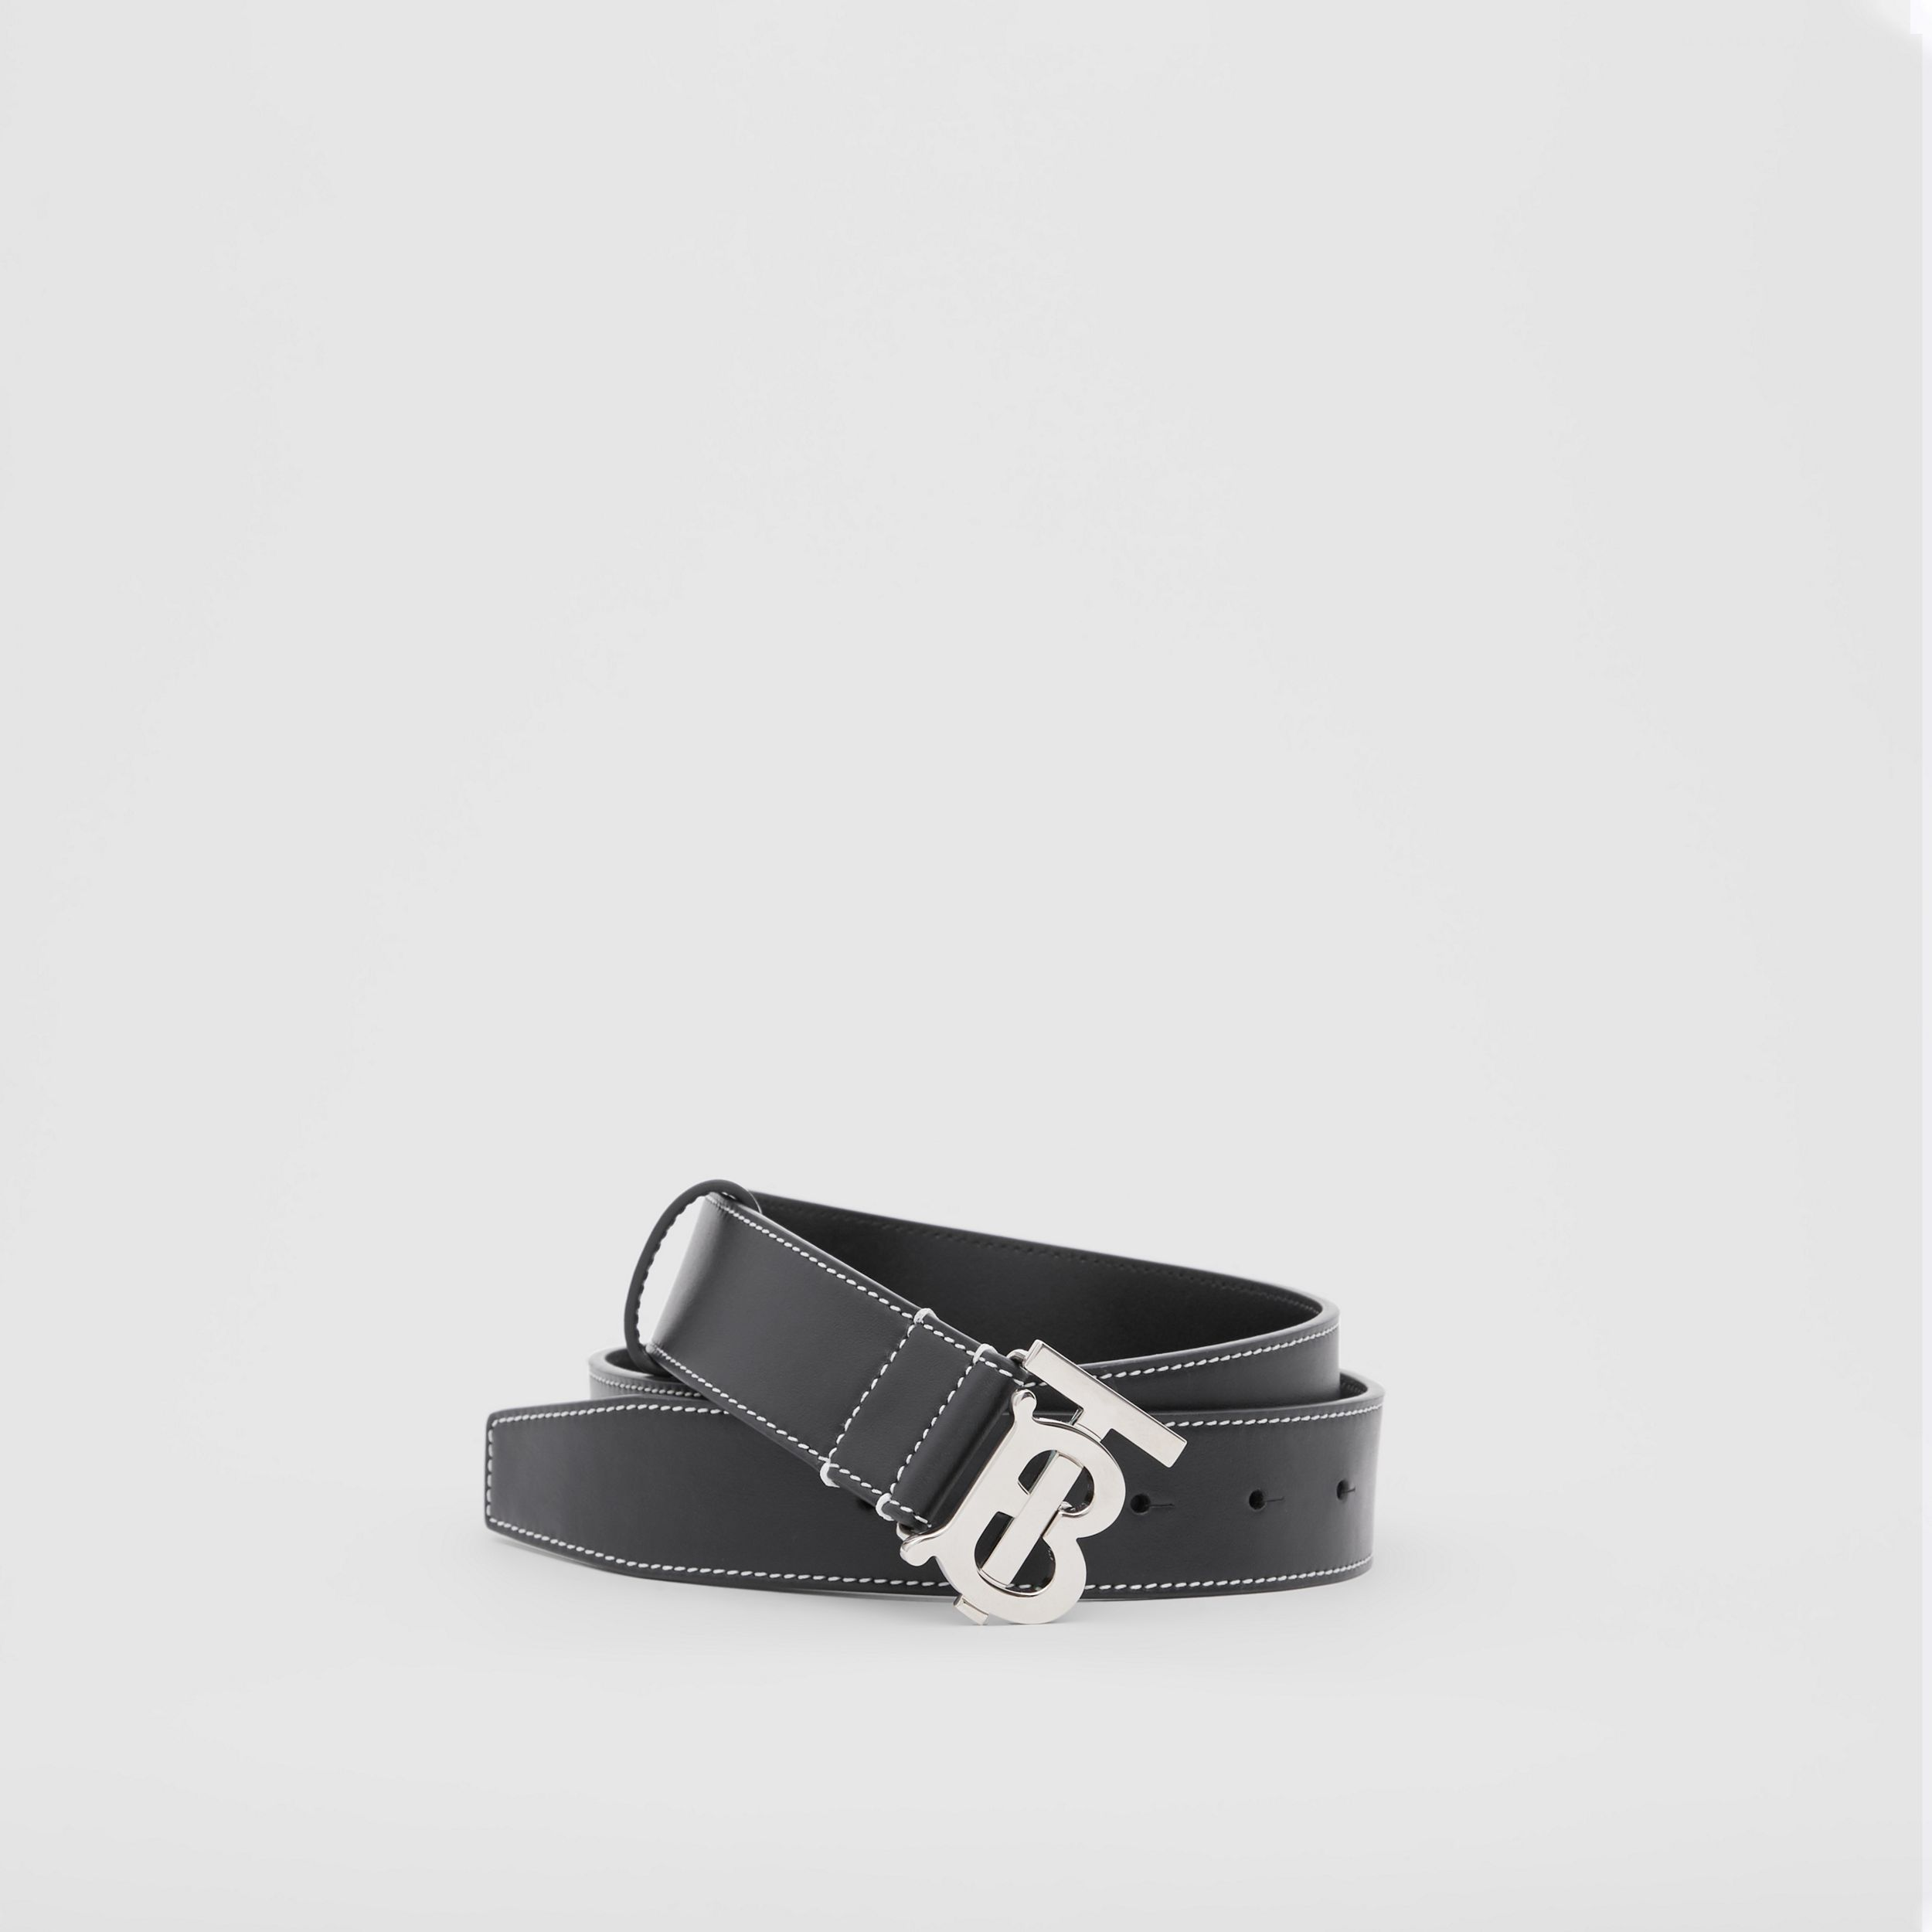 Monogram Motif Topstitched Leather Belt in Black - Men | Burberry United Kingdom - 1